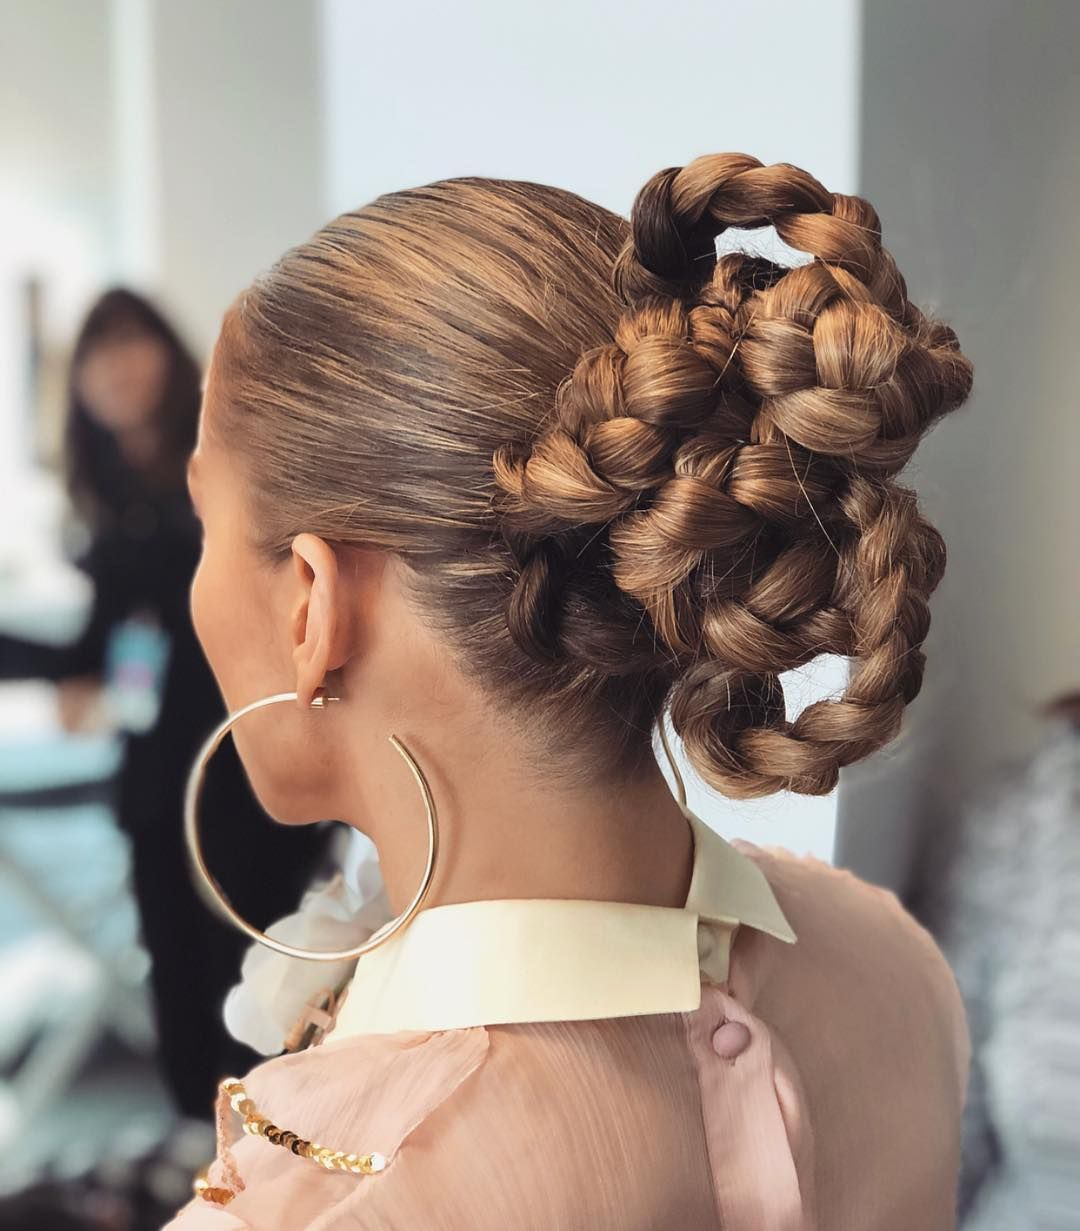 20 Braided Updo Hairstyles Pictures Of Pretty Updos With Braids